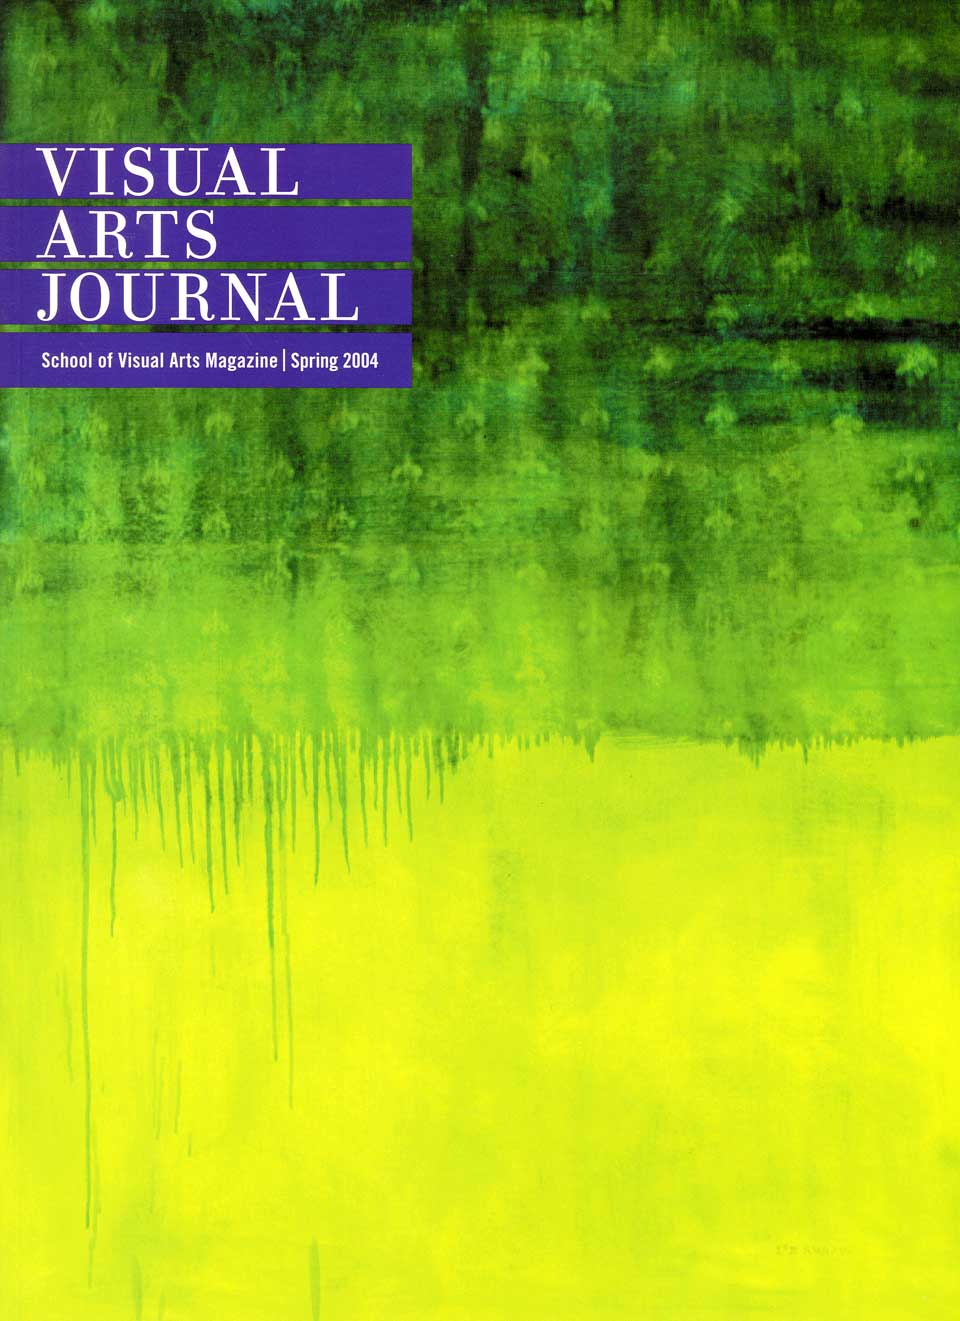 Visual Arts Journal cover